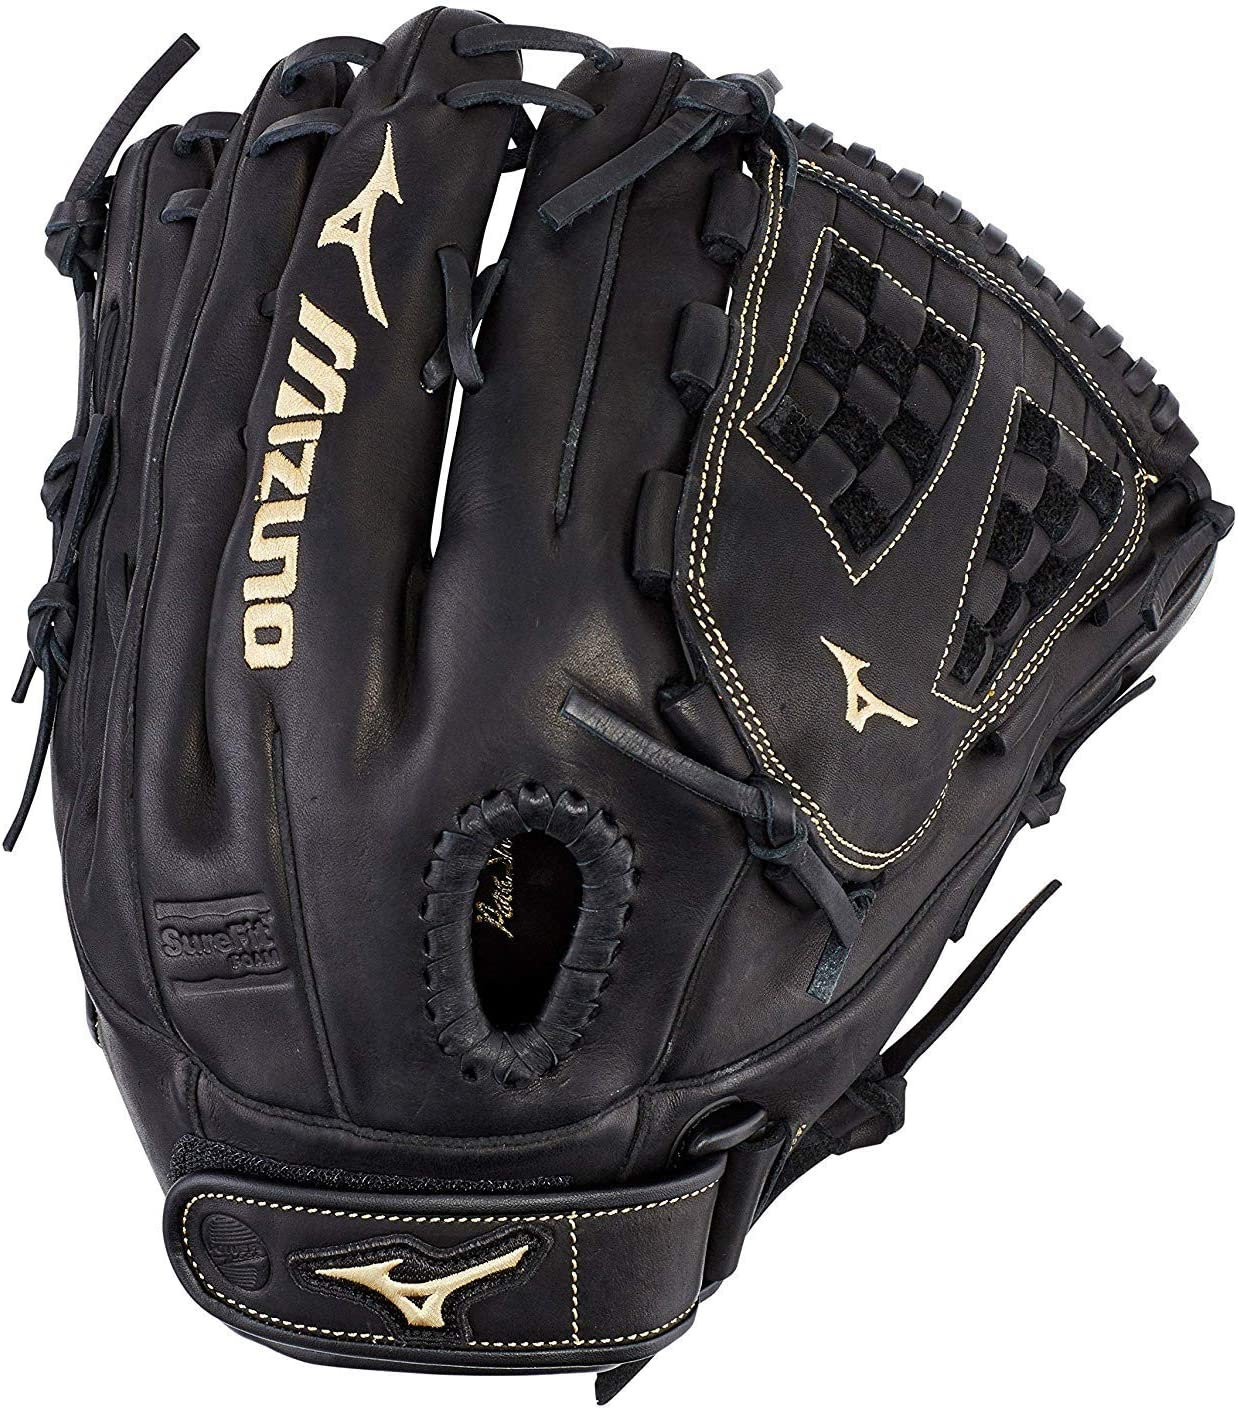 Mizuno MVP Prime Fastpitch Softball Glove Series